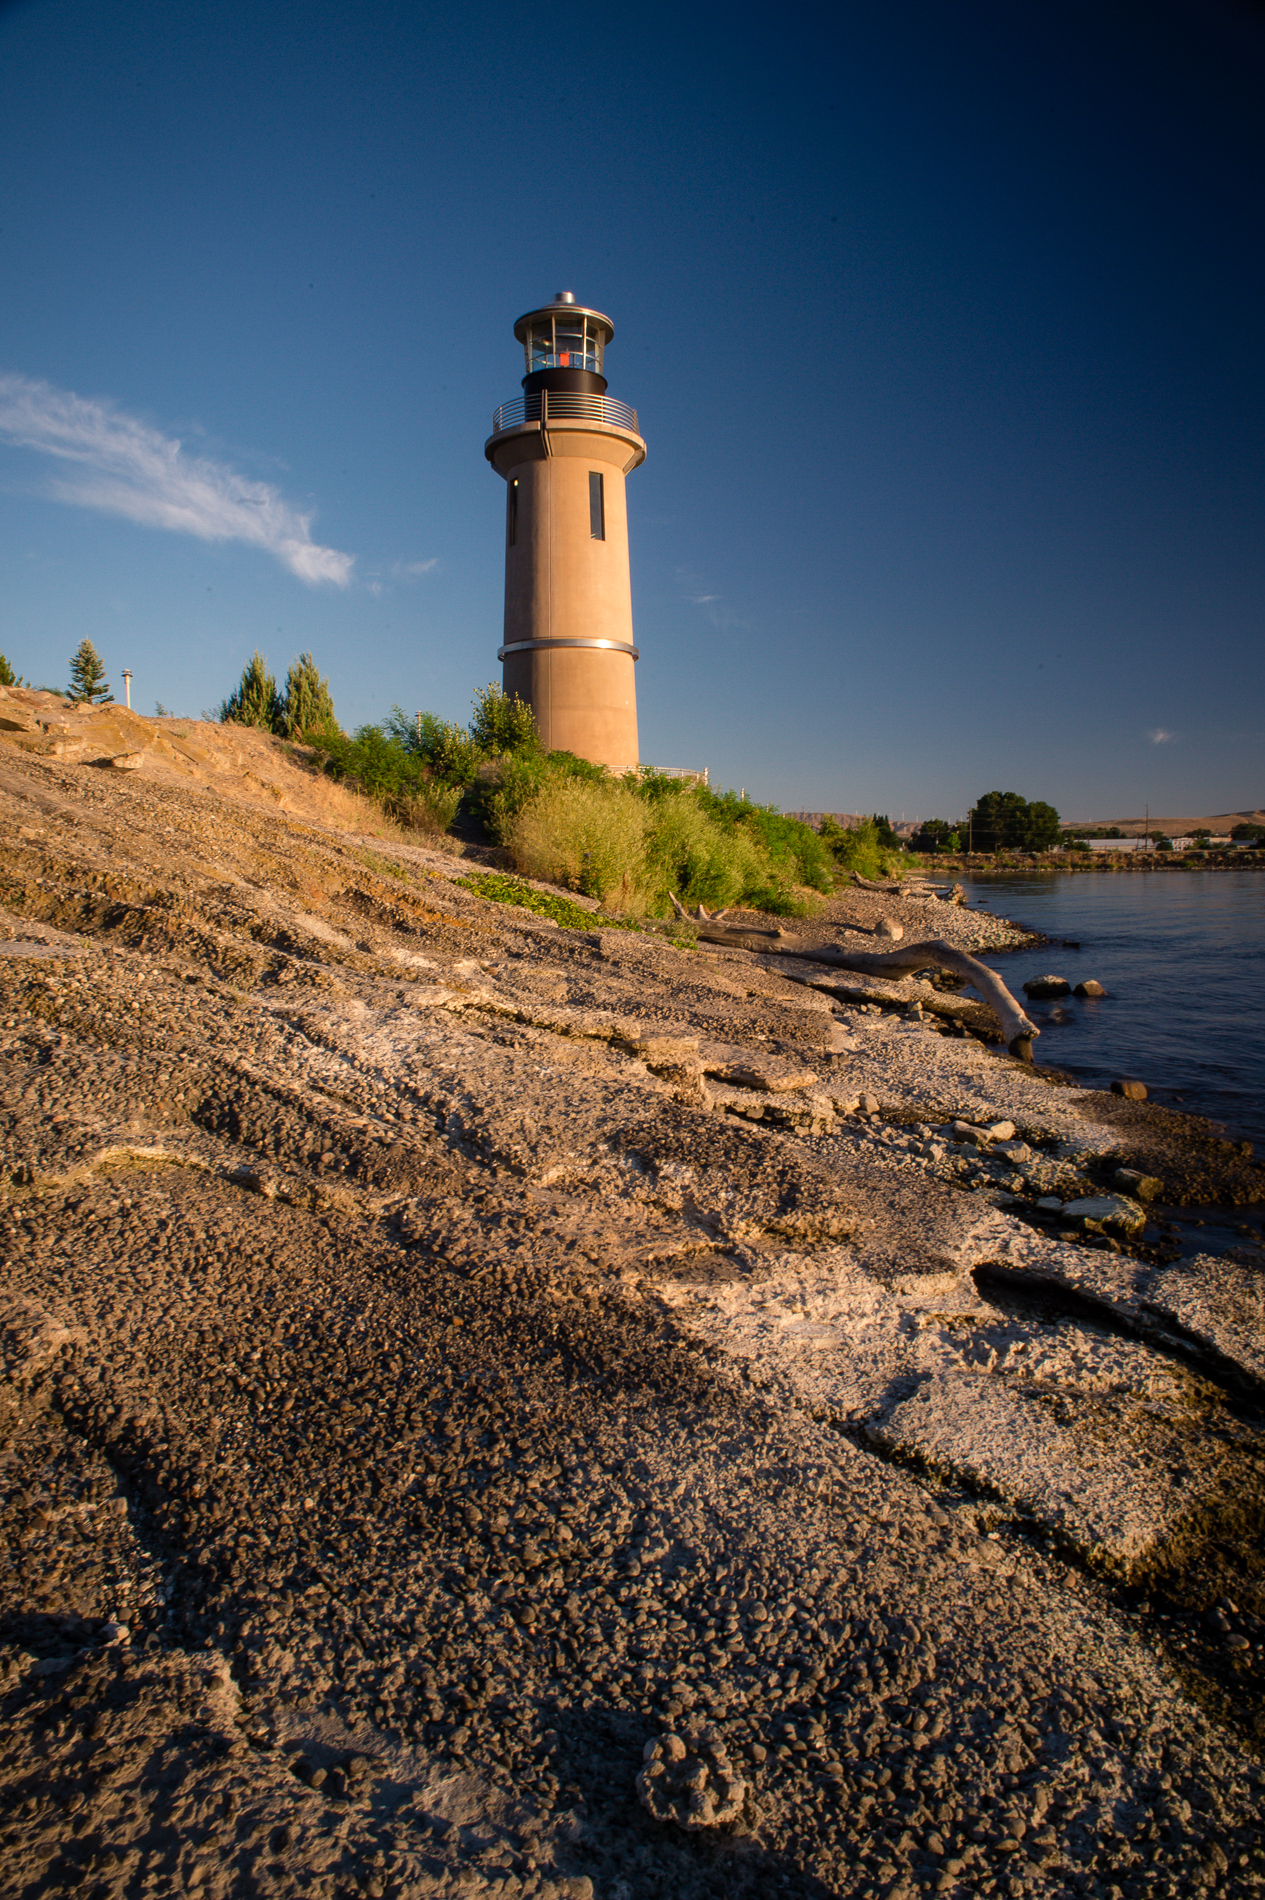 The Lighthouse at Clover Island